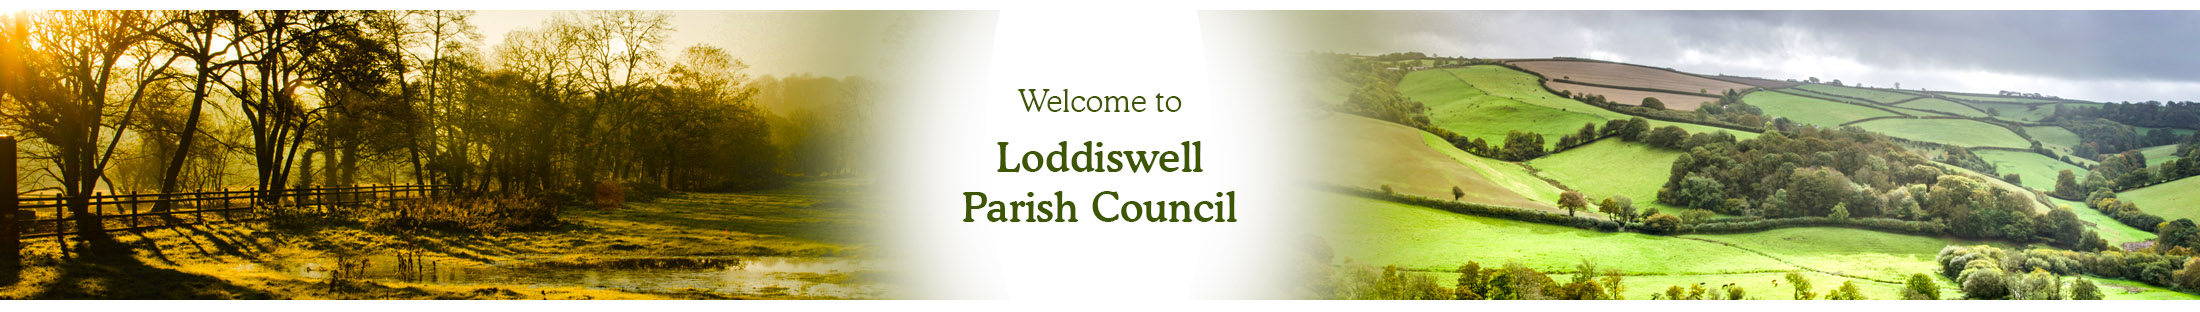 Header Image for Loddiswell Parish Council